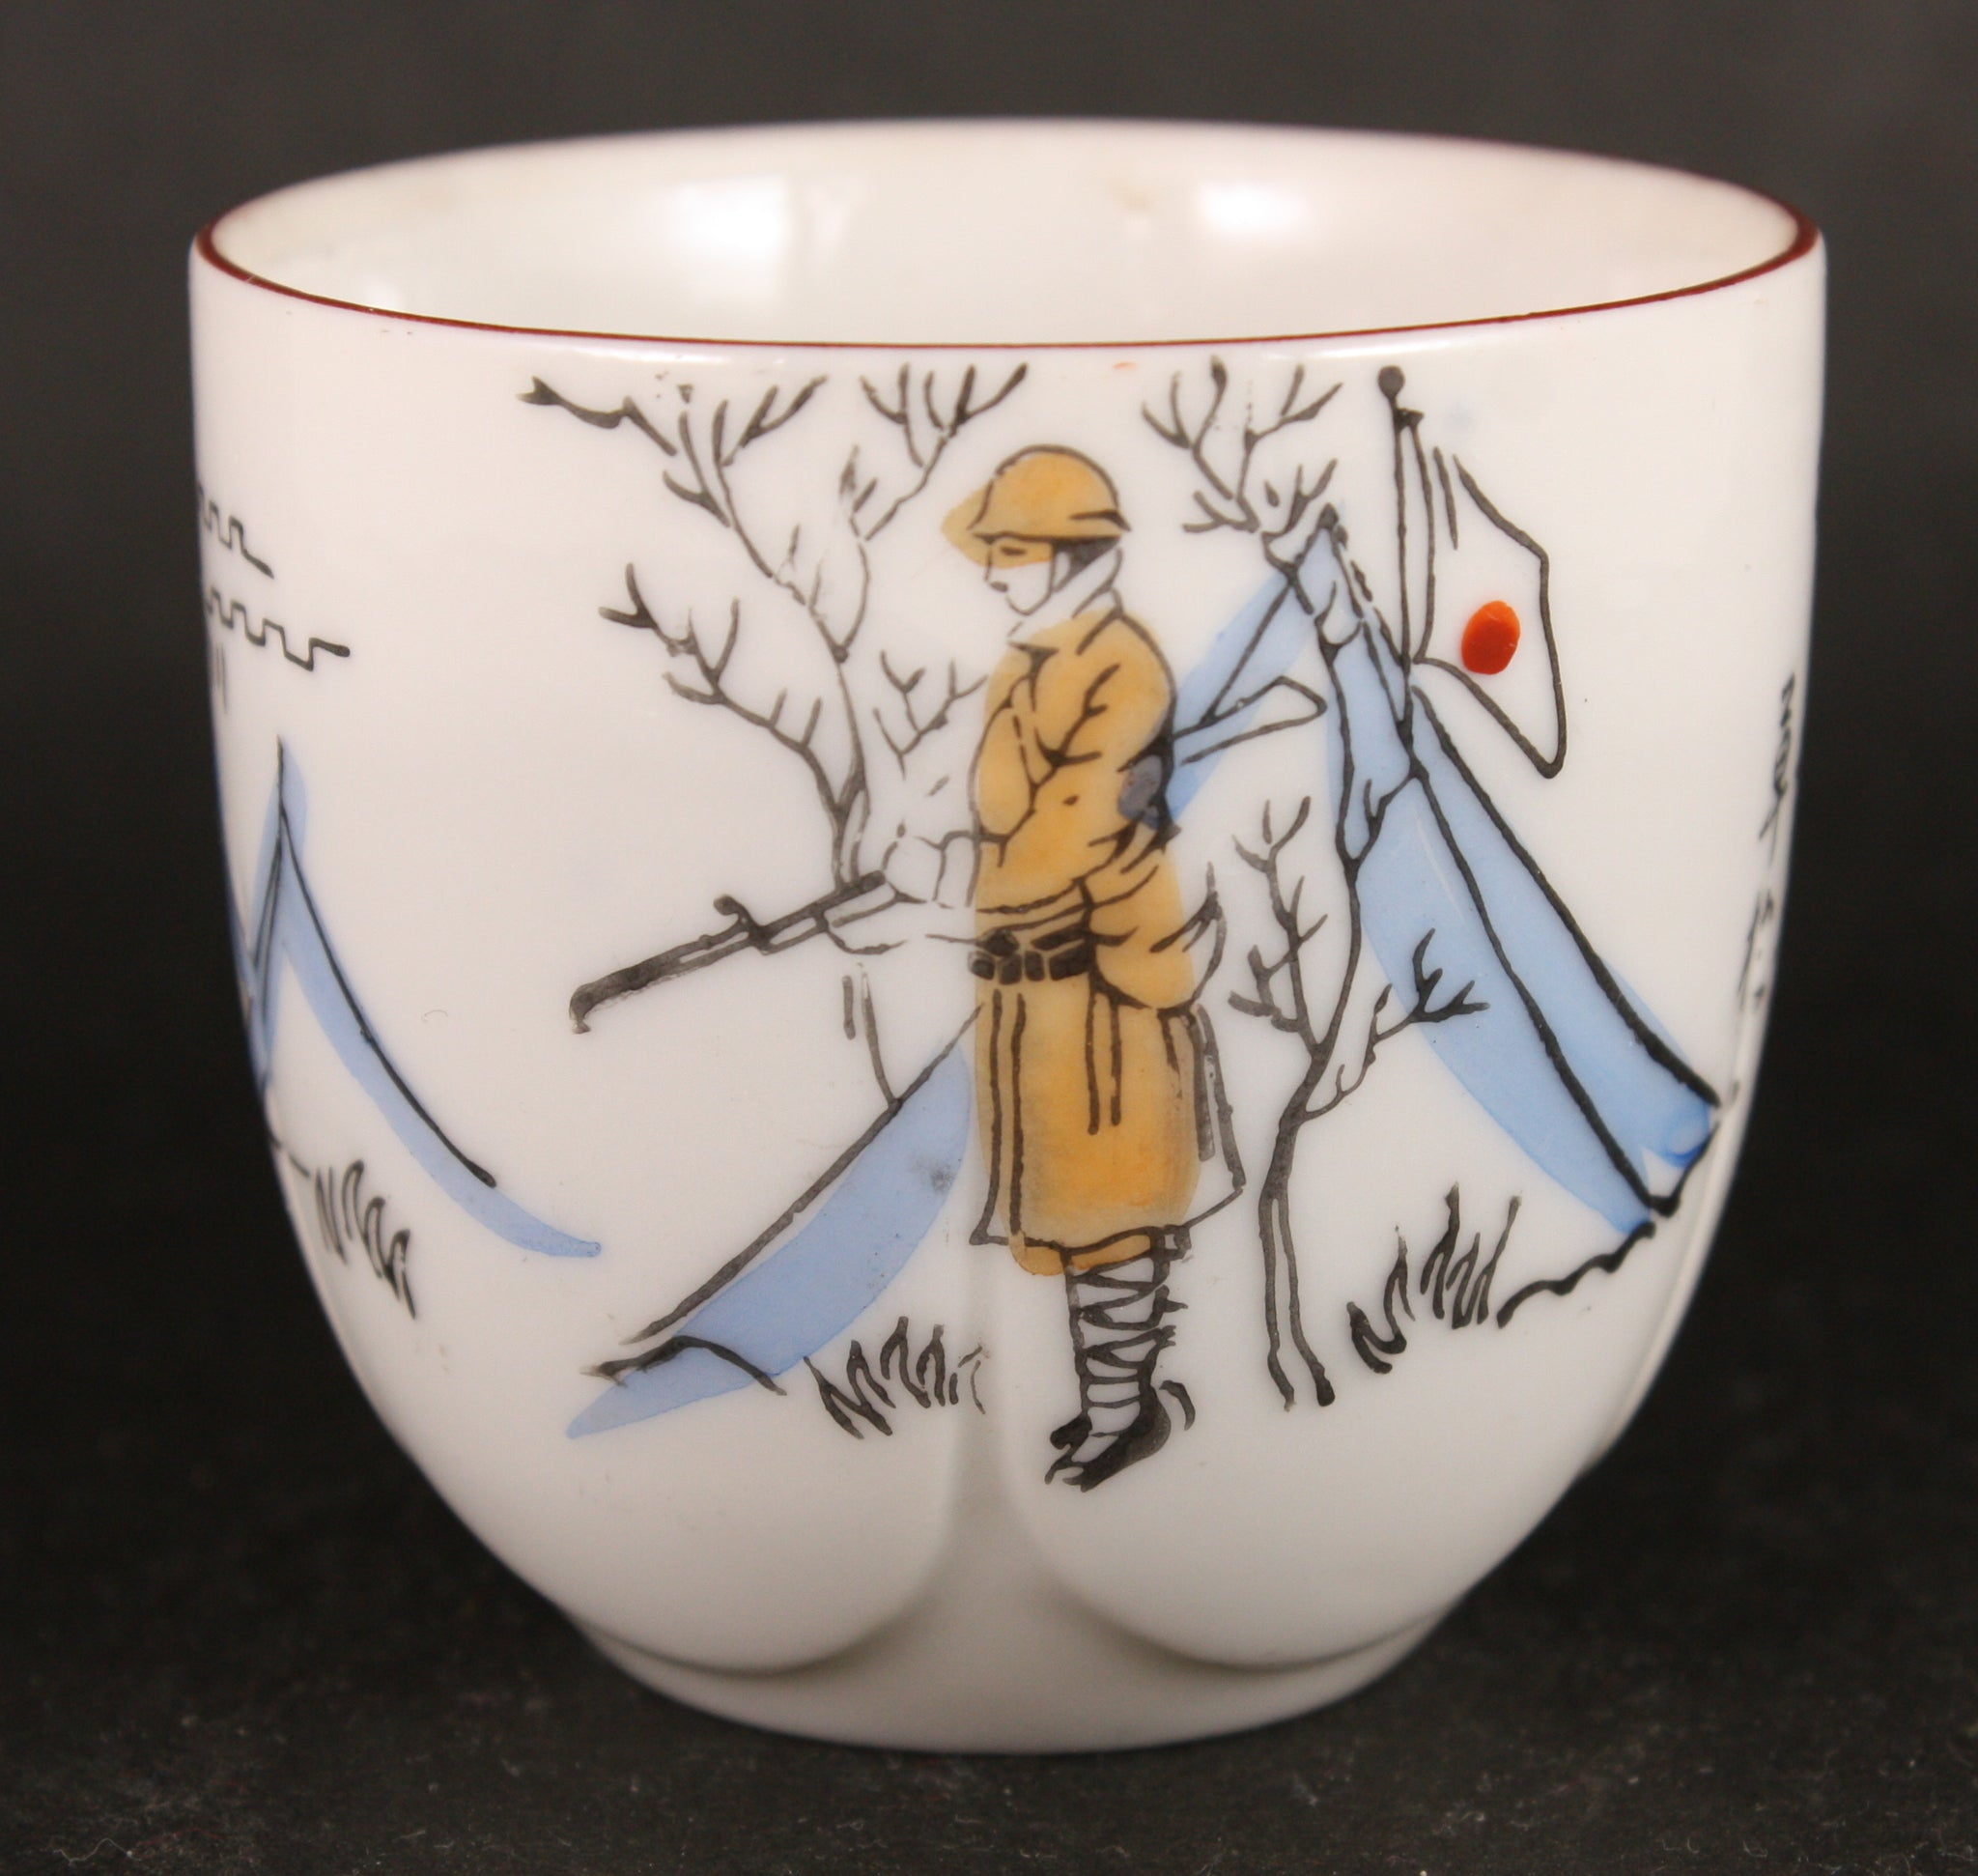 Rare Antique Japanese Military Camping Soldier China Occupation Army Tea Cup